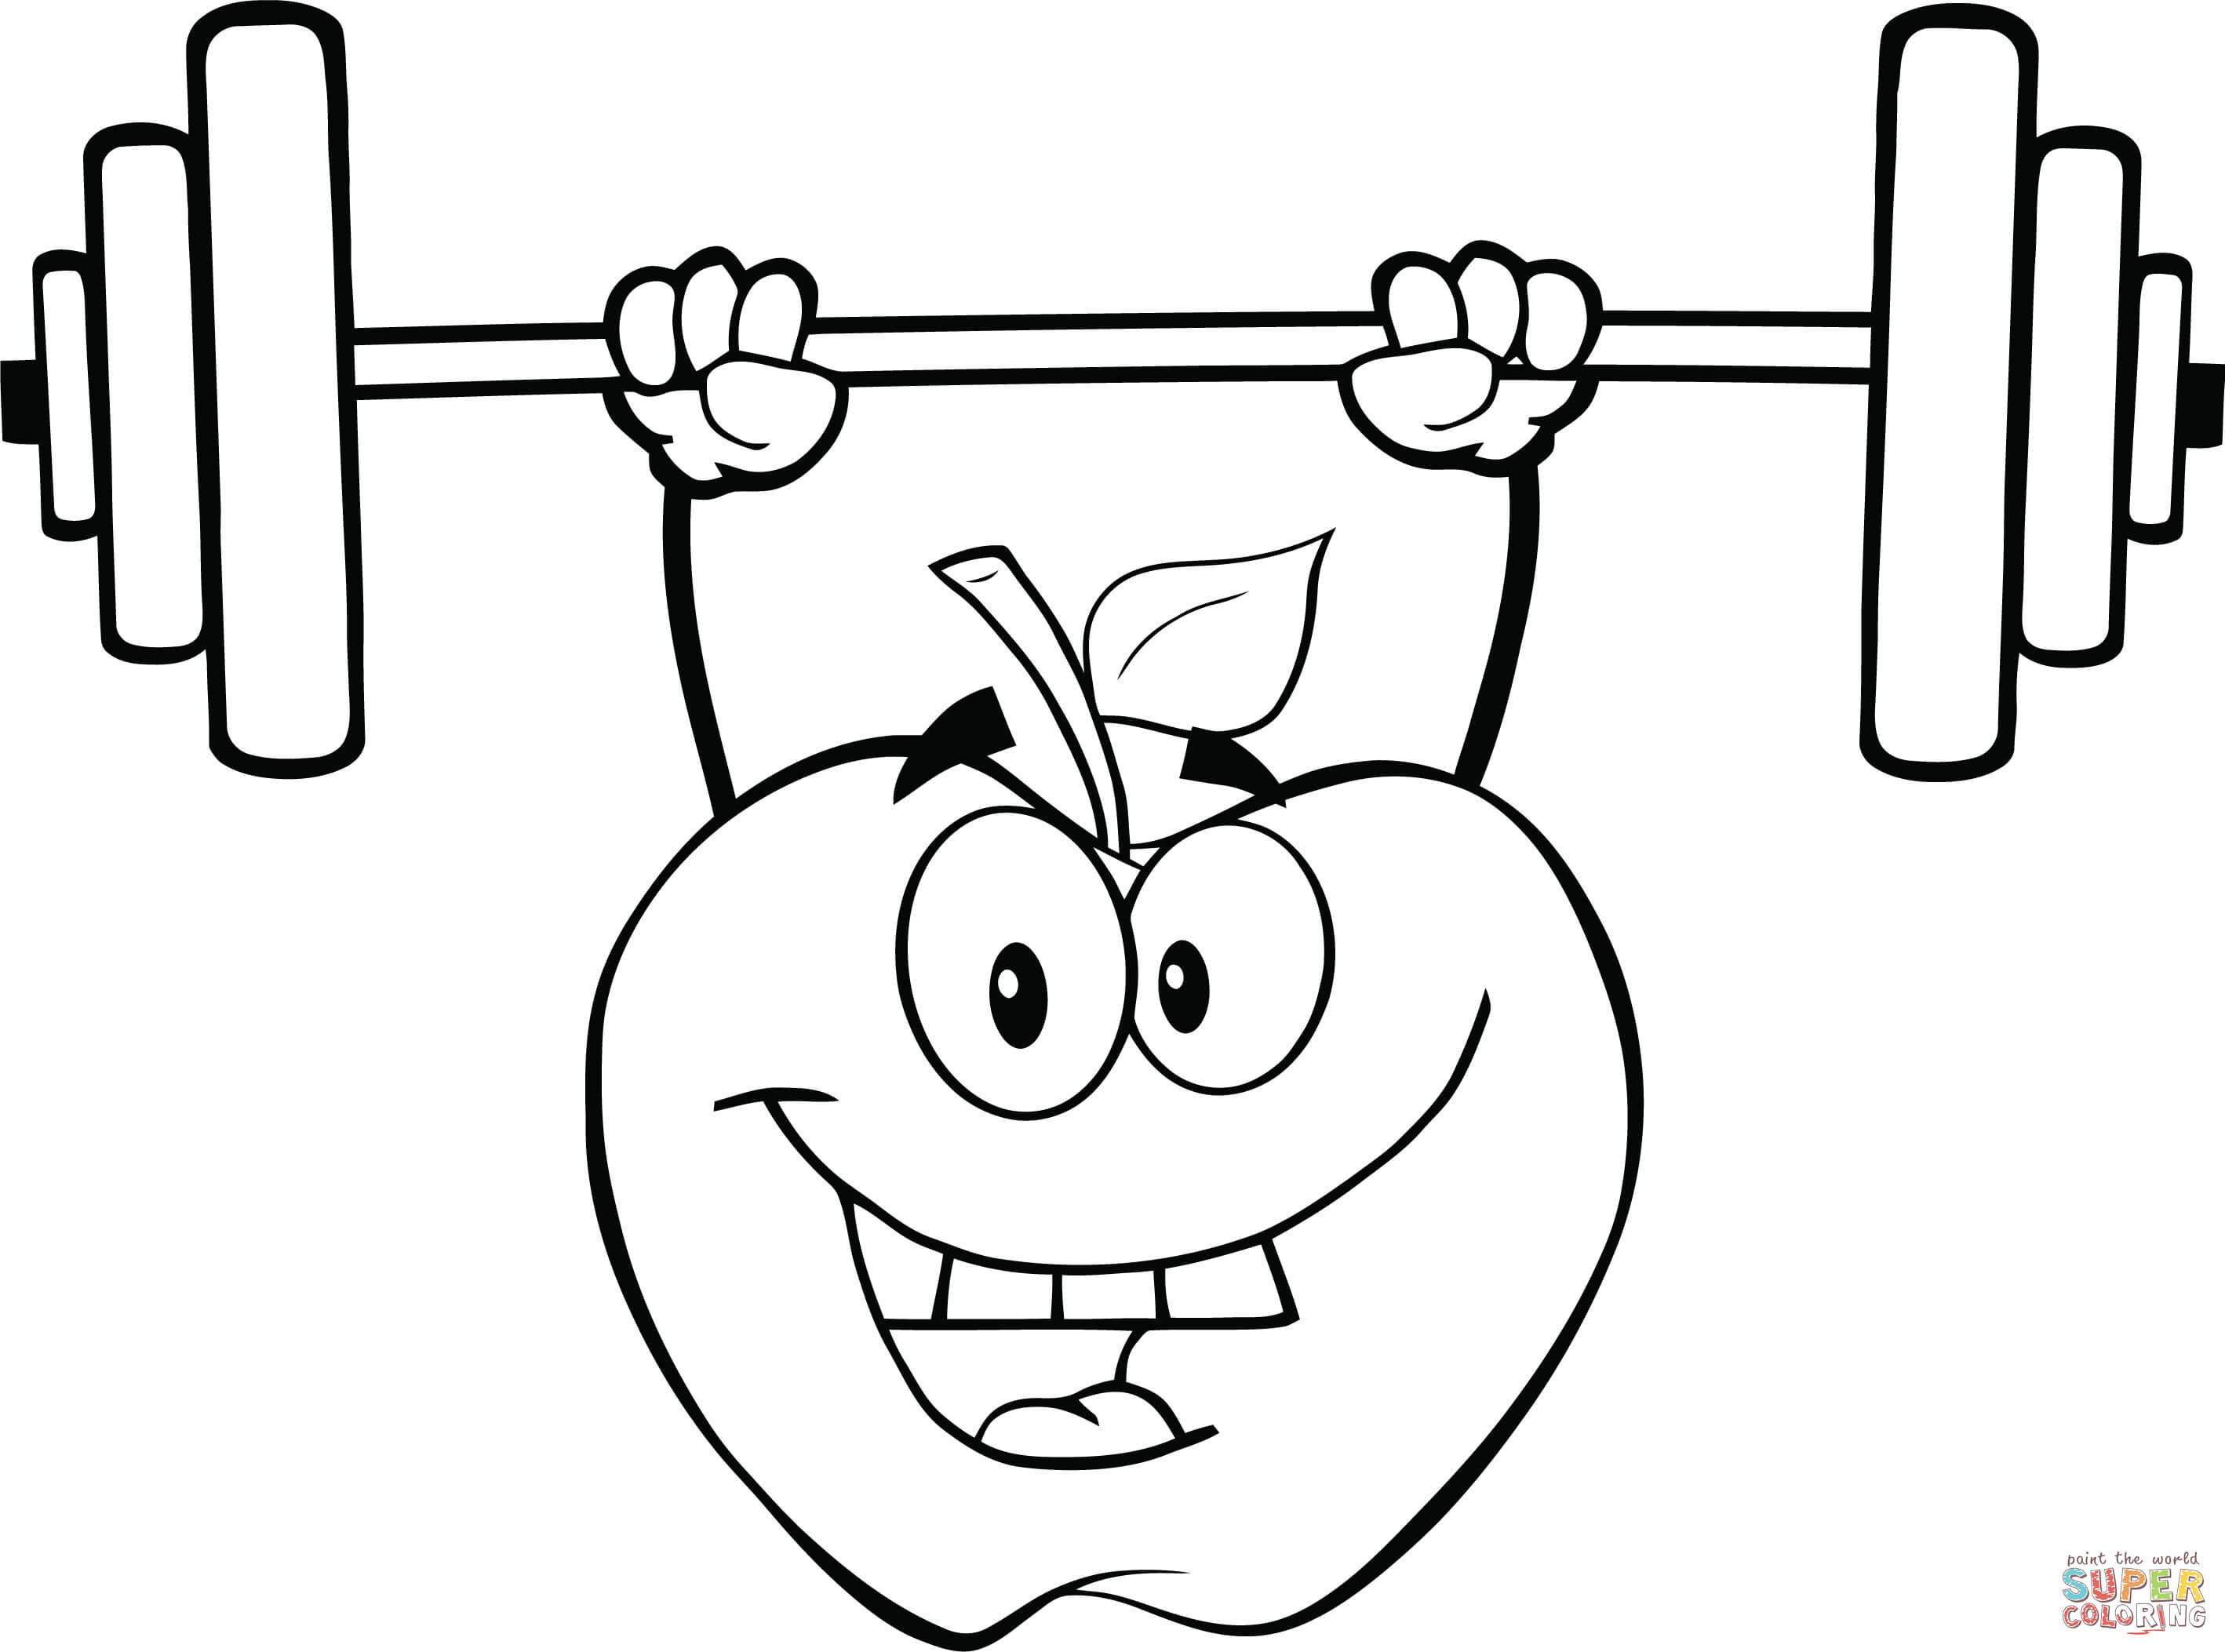 2836x2106 Apple Cartoon Character Lifting Weights Coloring Page Free